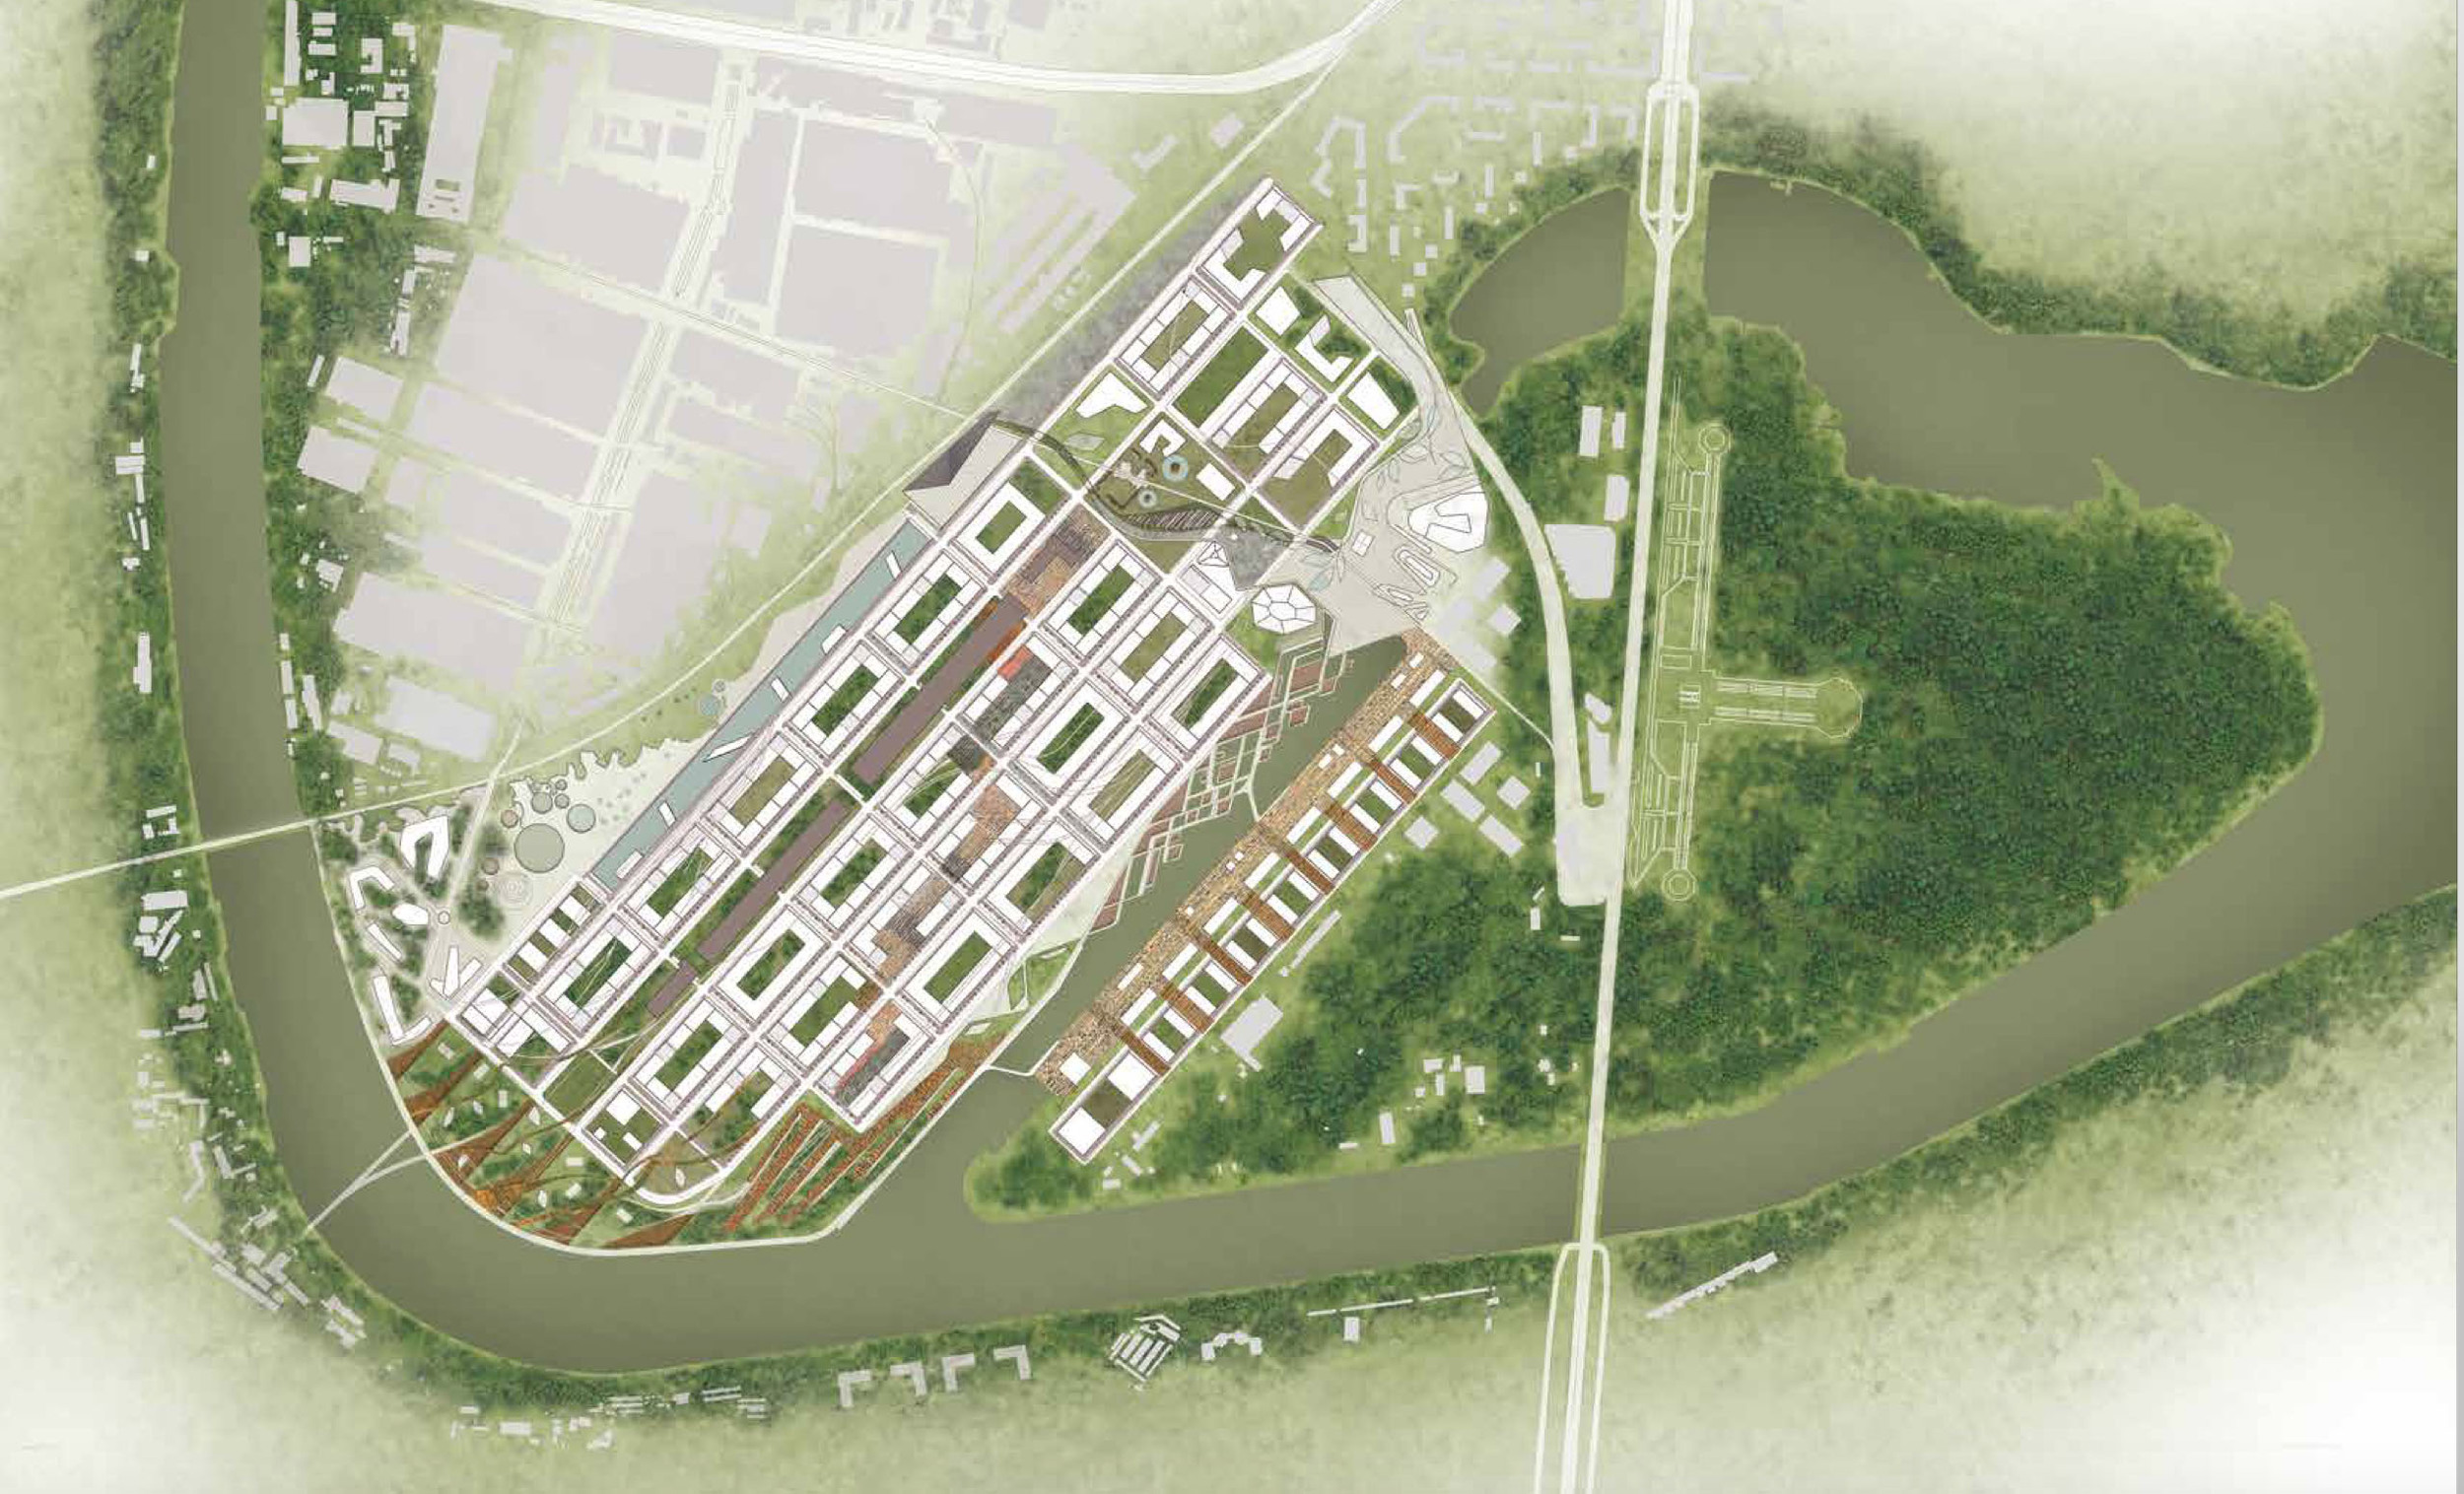 Detailed masterplan for former industrial territory (ZIL)